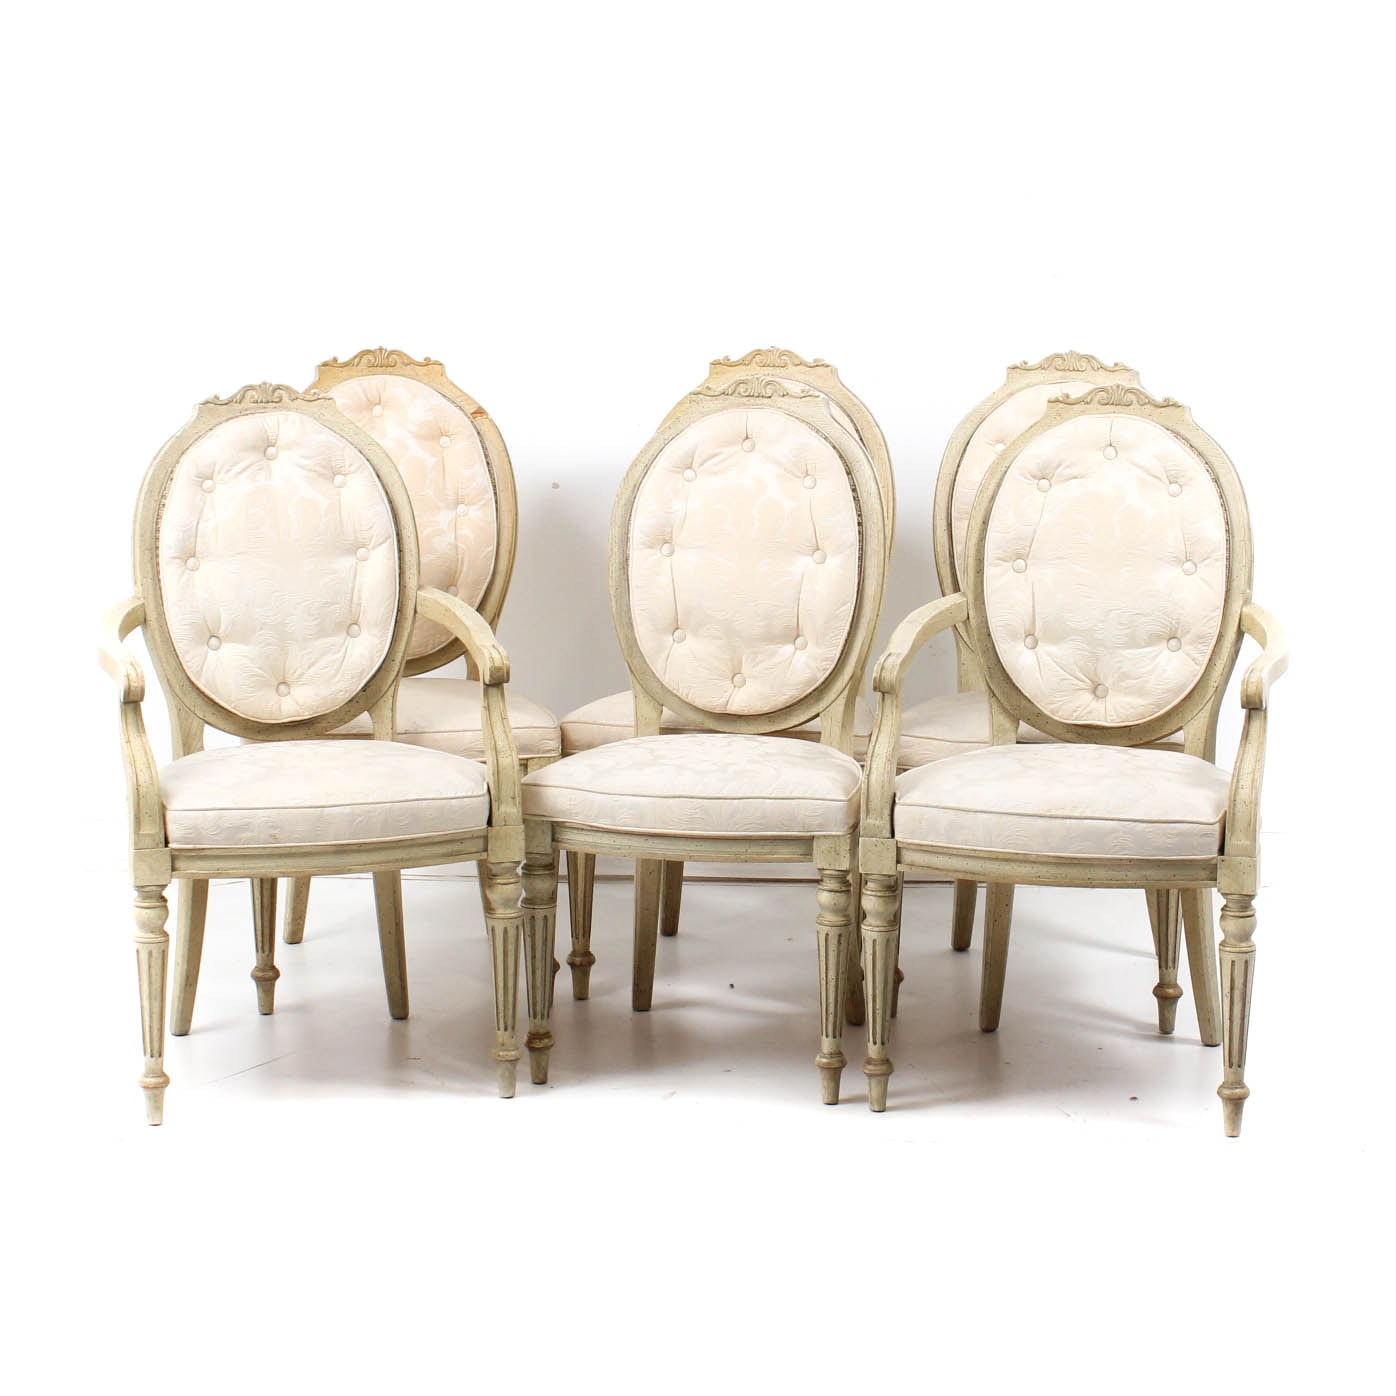 Neoclassical Dining Chairs